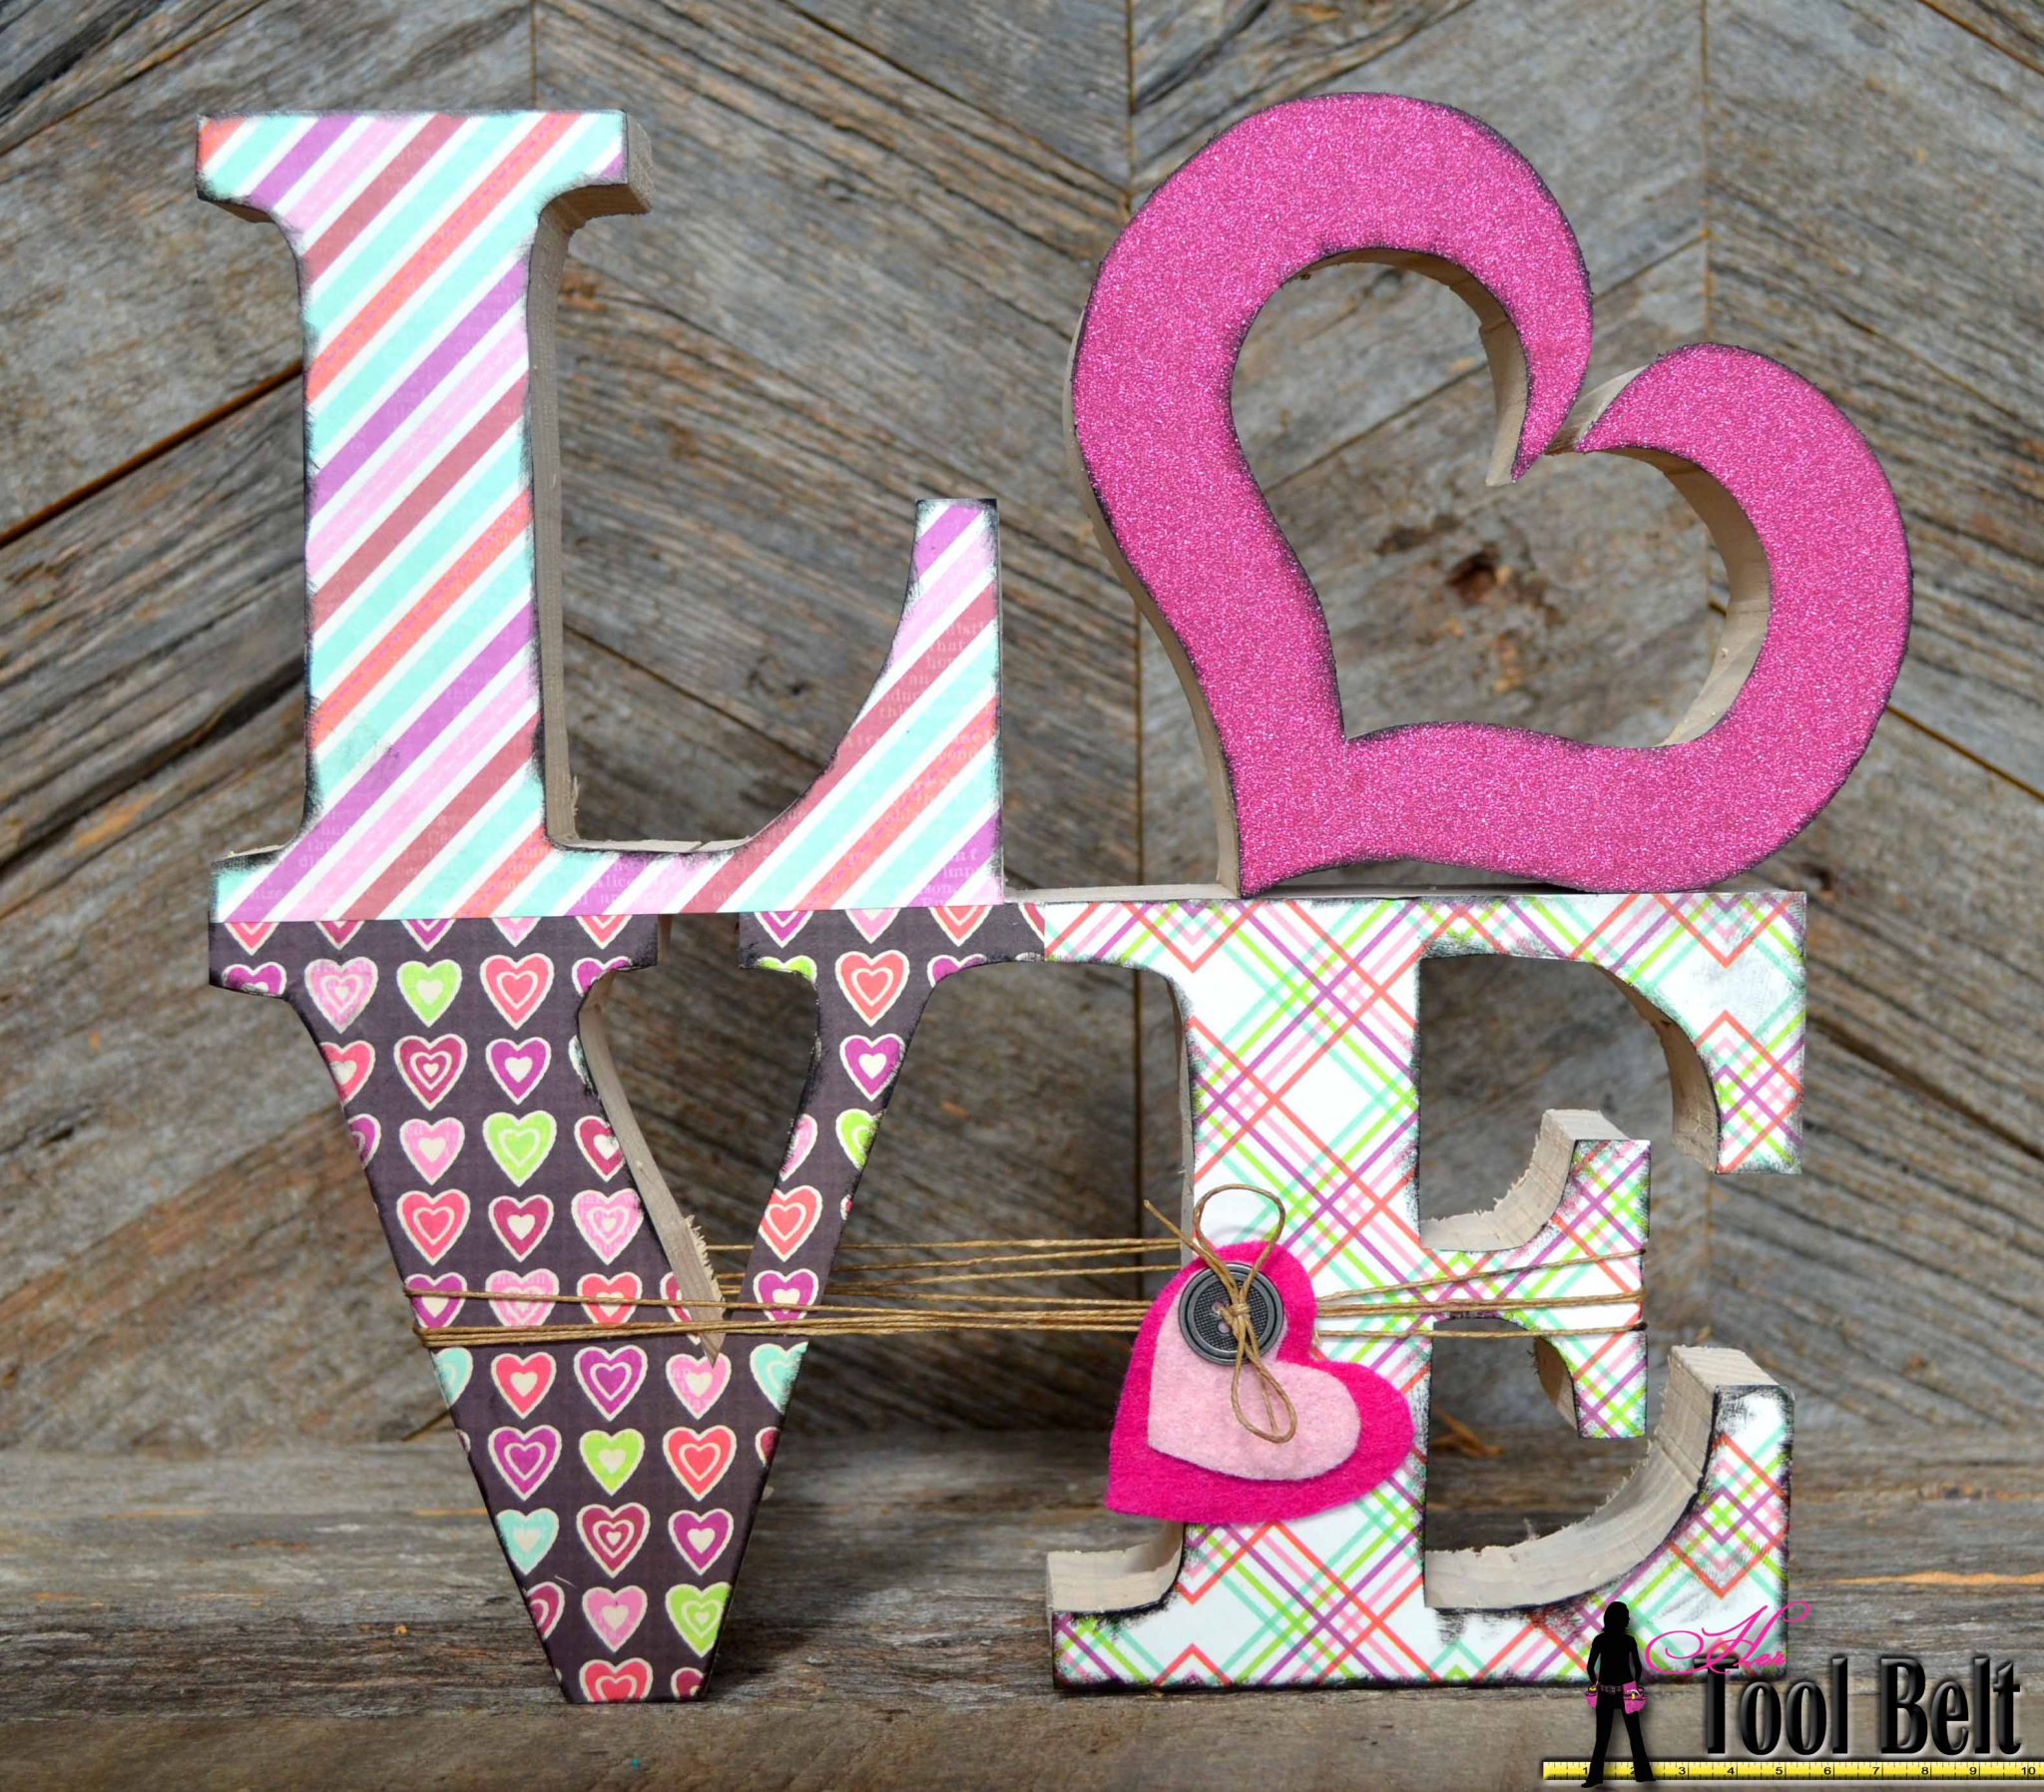 LOVE-wood-blocks @hertoolbelt